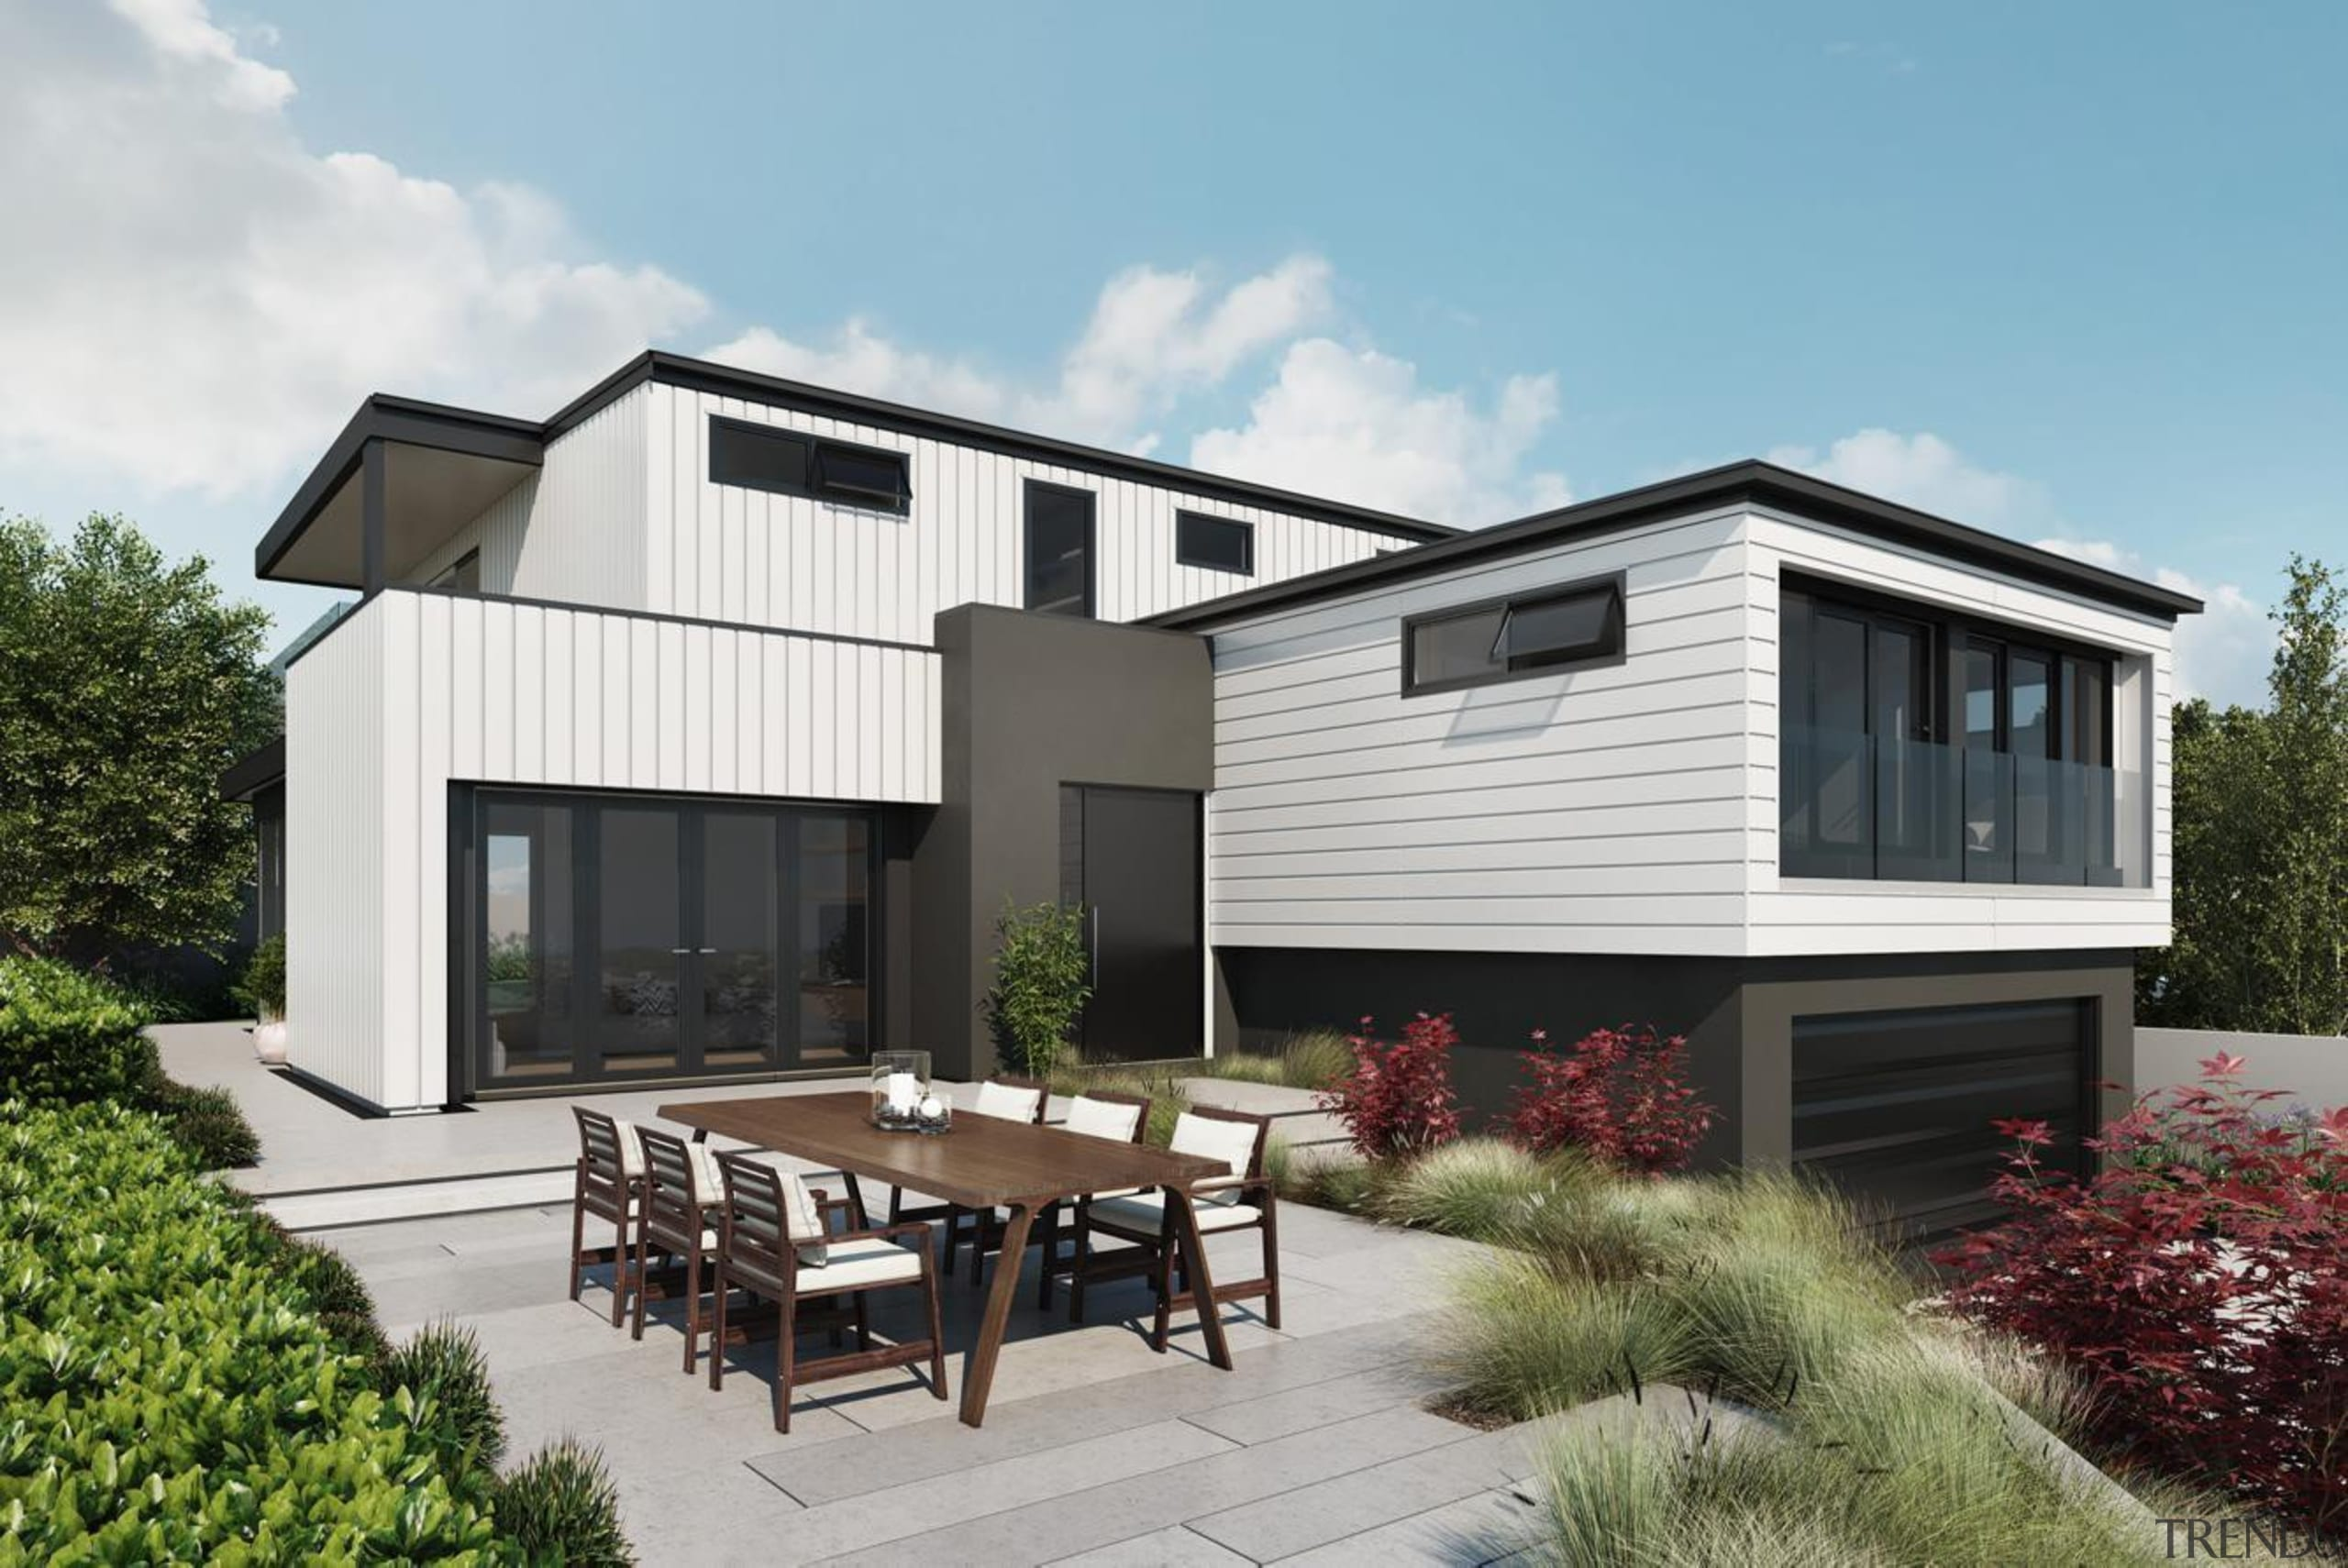 Linea Oblique Weatherboard - Linea Oblique Weatherboard - architecture, cottage, elevation, facade, home, house, property, real estate, siding, white